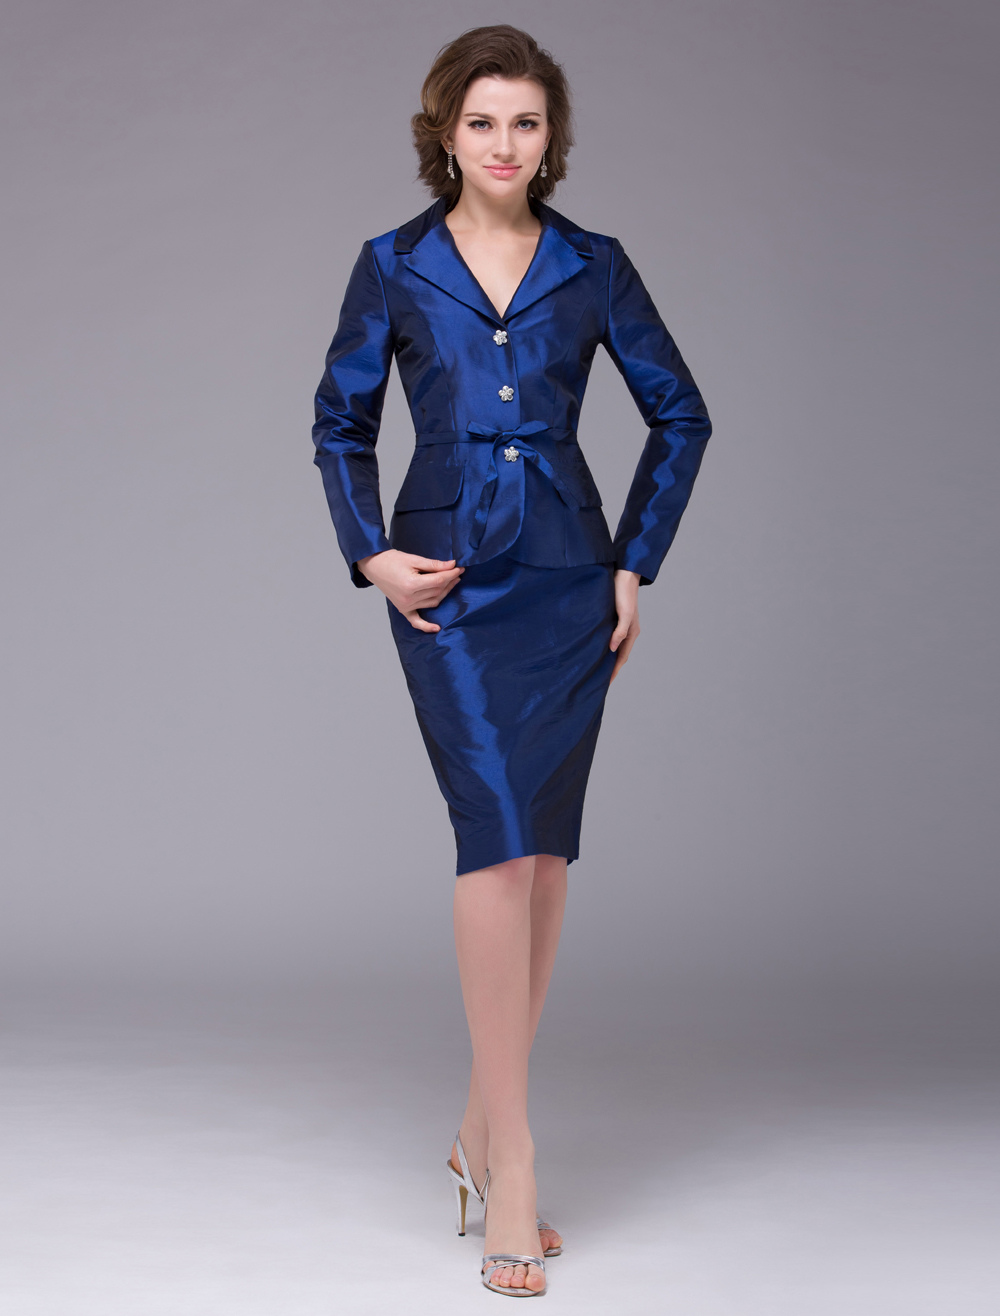 Royal Blue Sheath Taffeta Rhinestone Long Sleeves Bridal Mother Dress with V-Neck Wedding Guest Dress